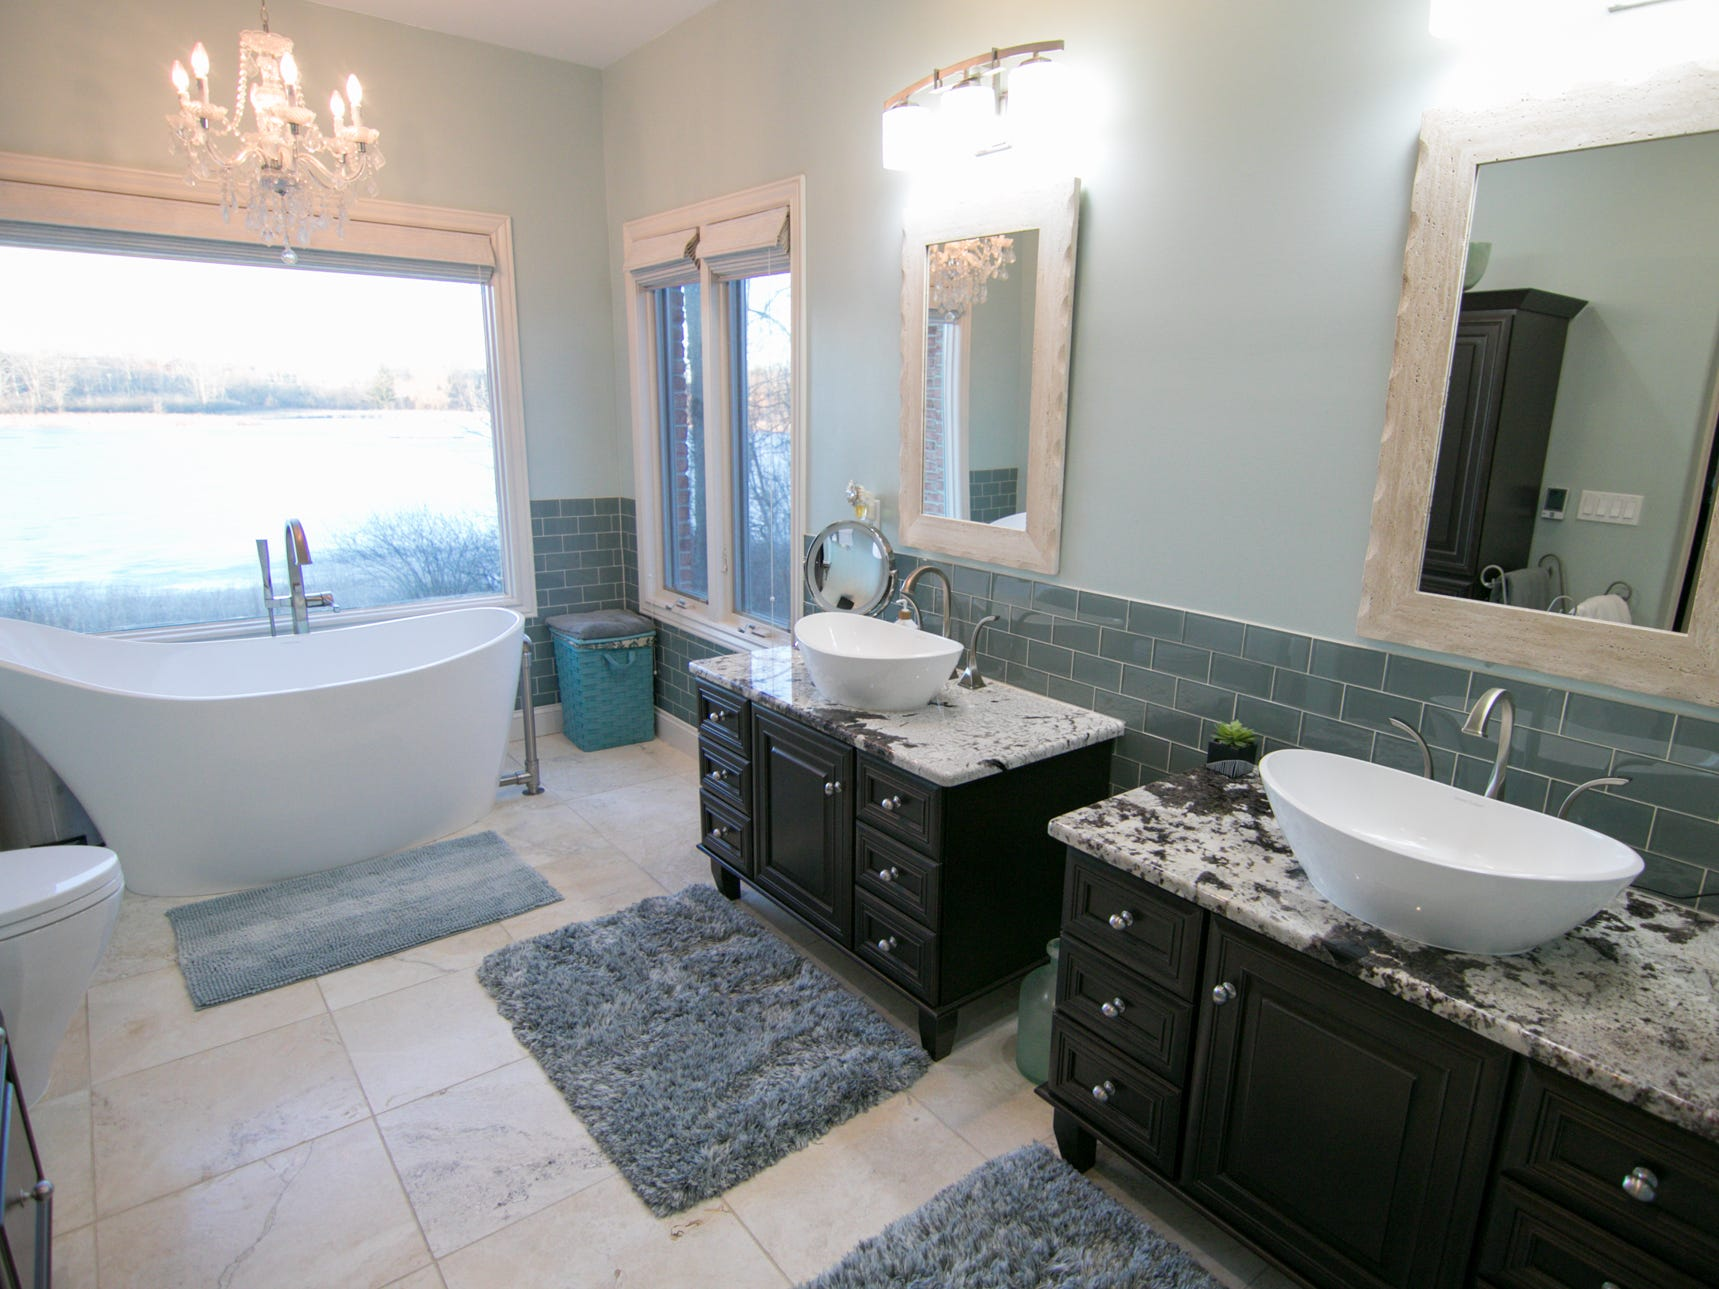 Custom vanities and a slipper tub are among the niceties of the master bath in Michelle and Adam Harris's home, shown Friday, Jan. 4, 2019.